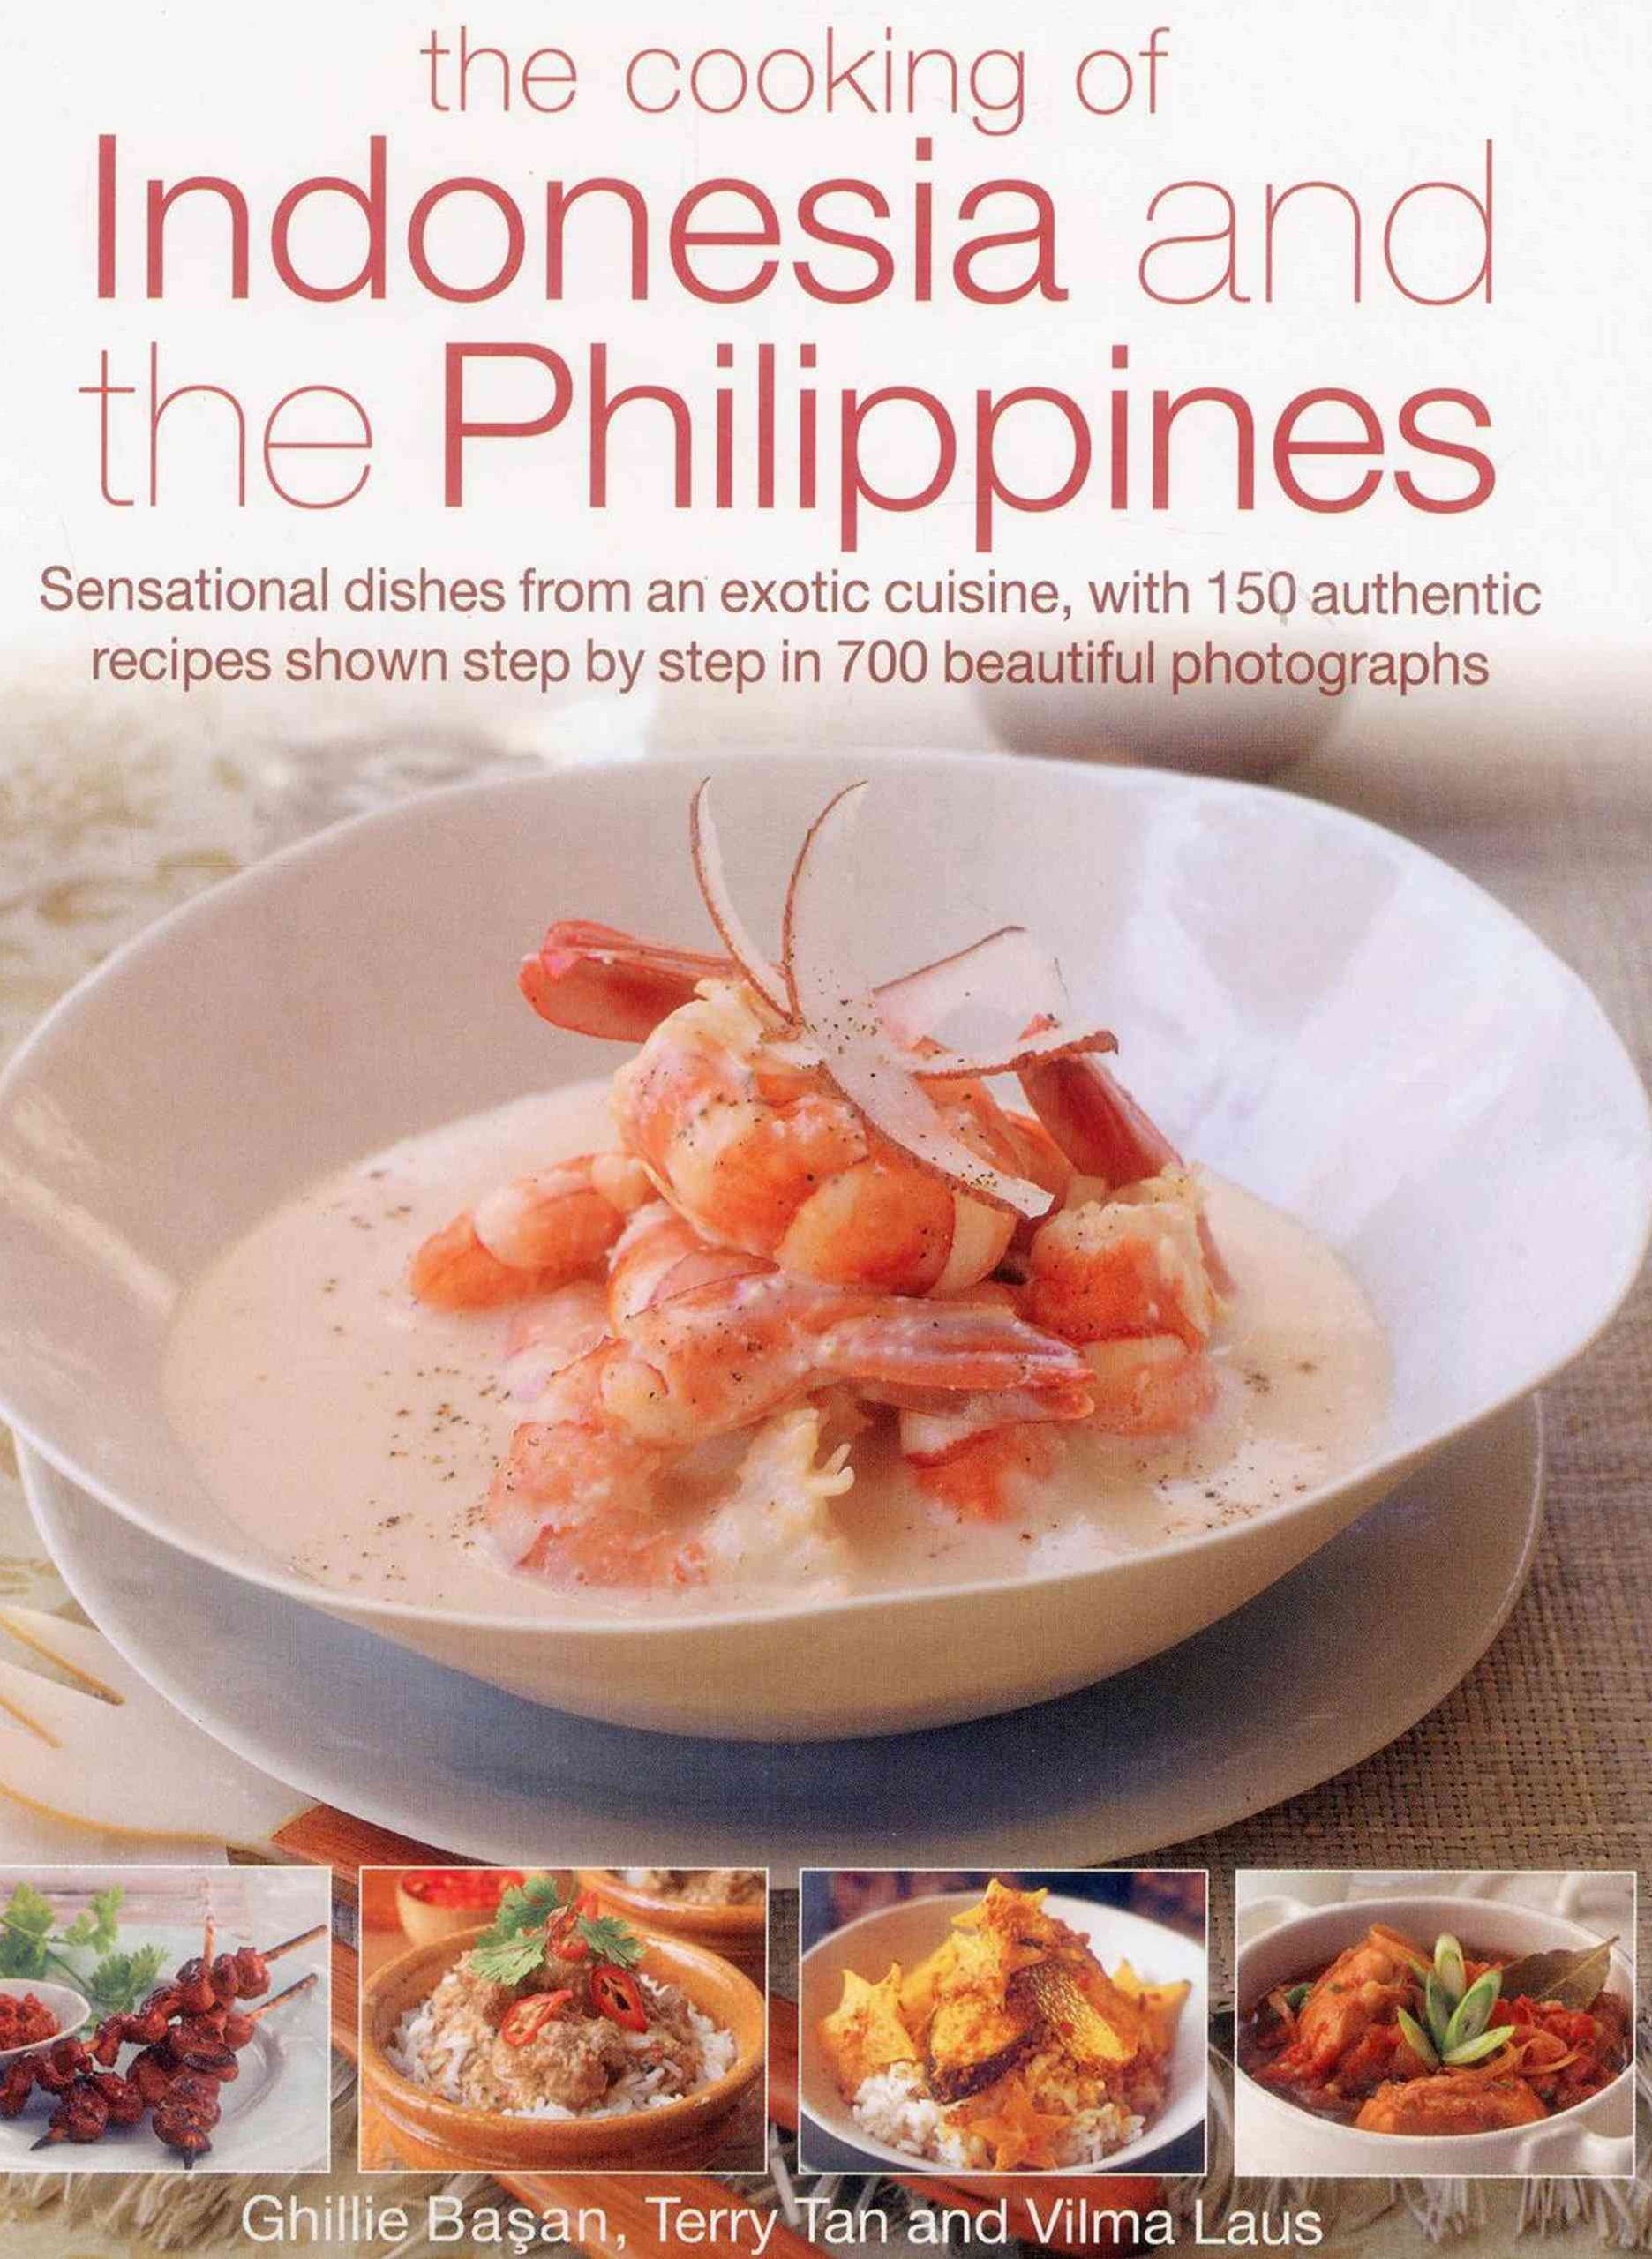 The Cooking of Indonesia and the Philippines